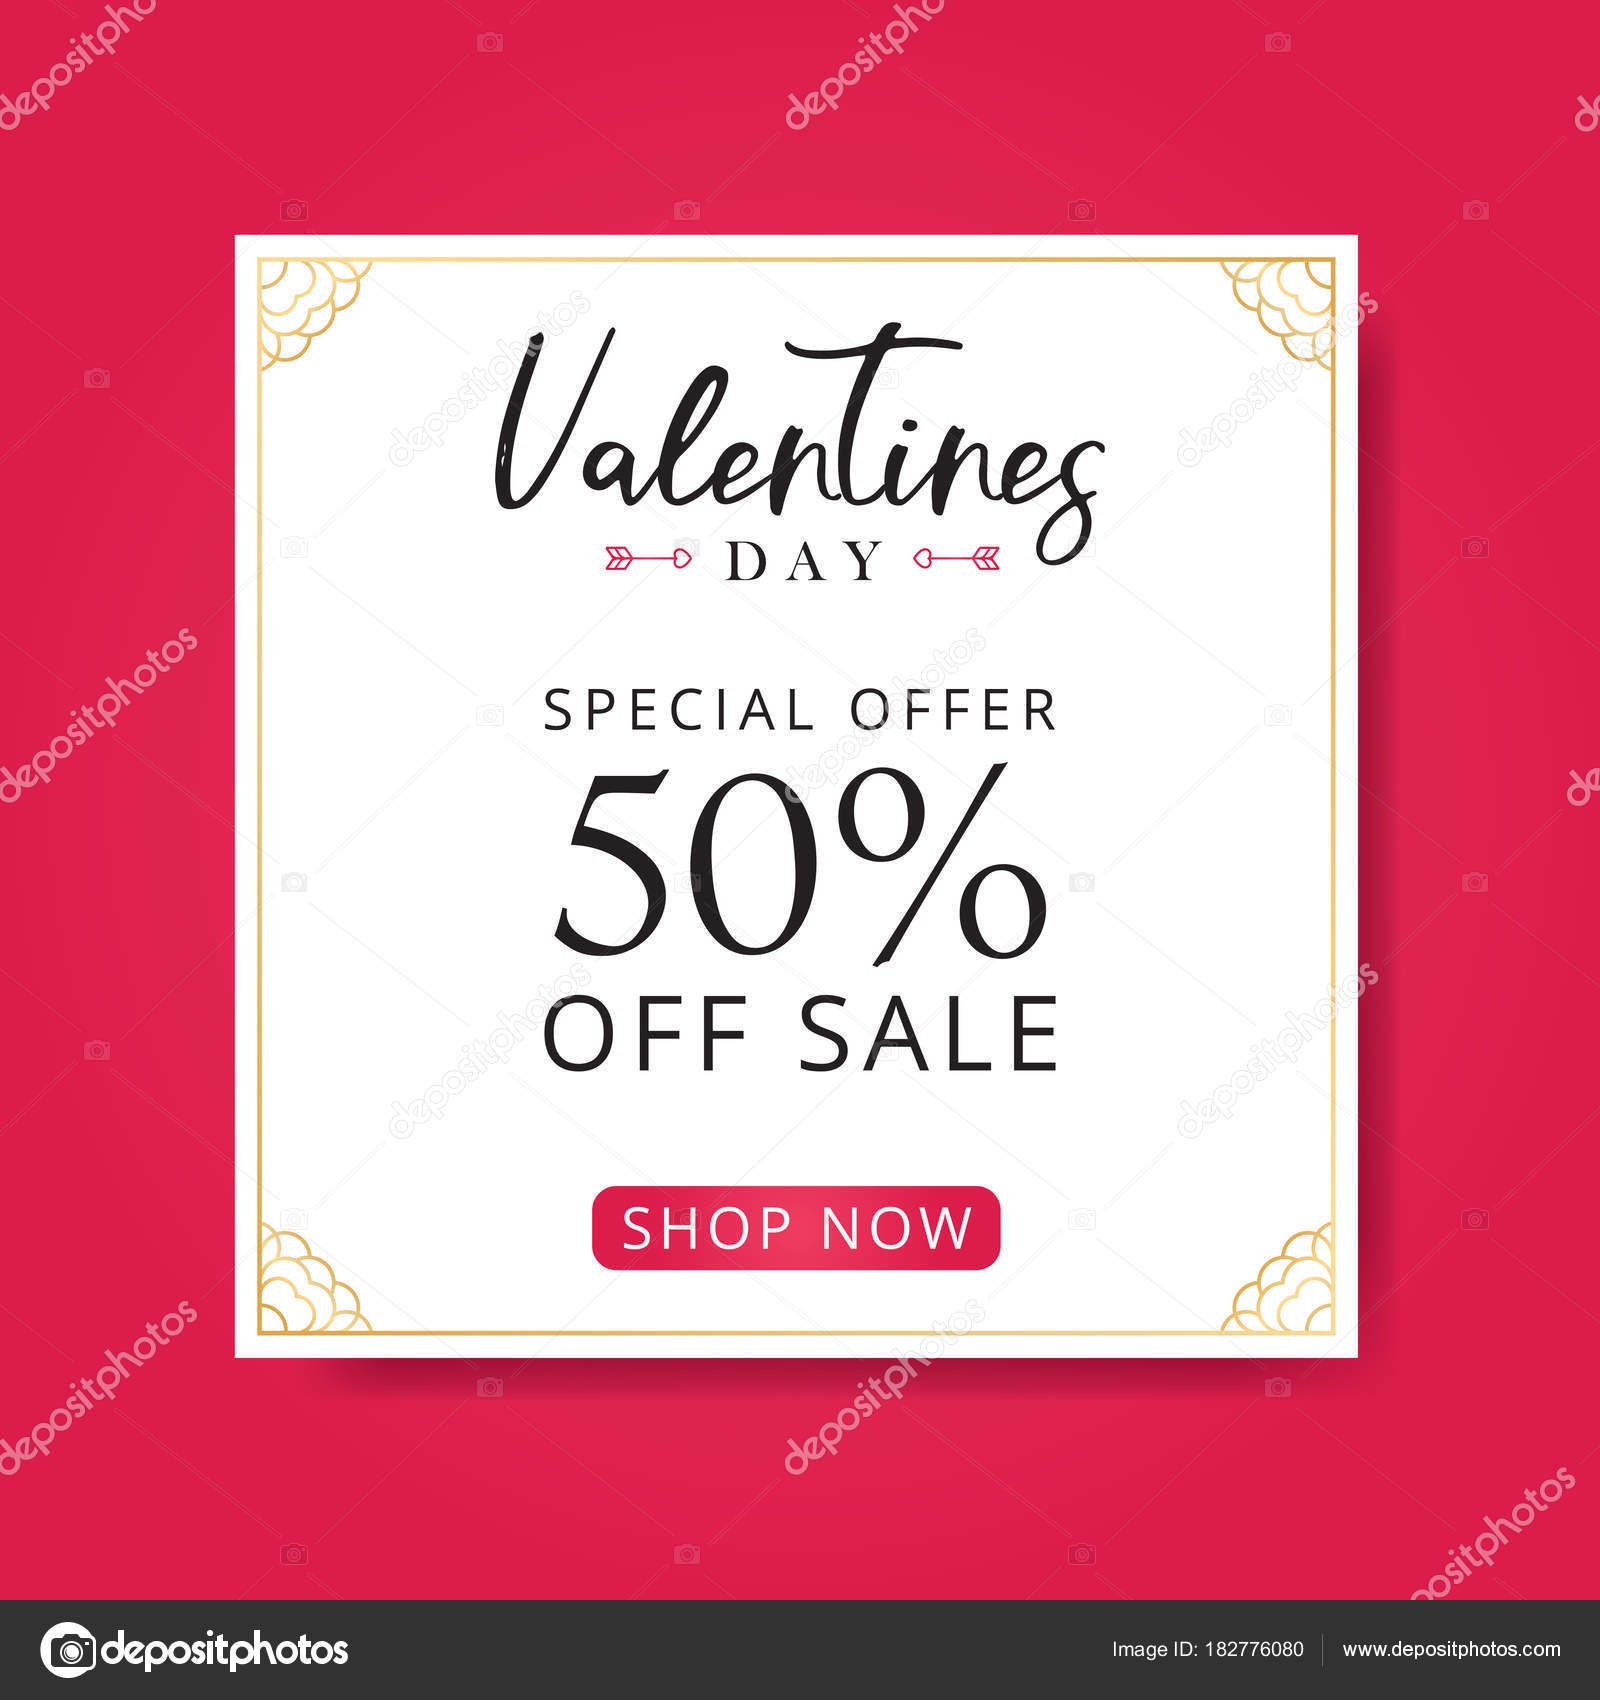 Valentines Day Sale Background Flyer Template Decorative Hearts